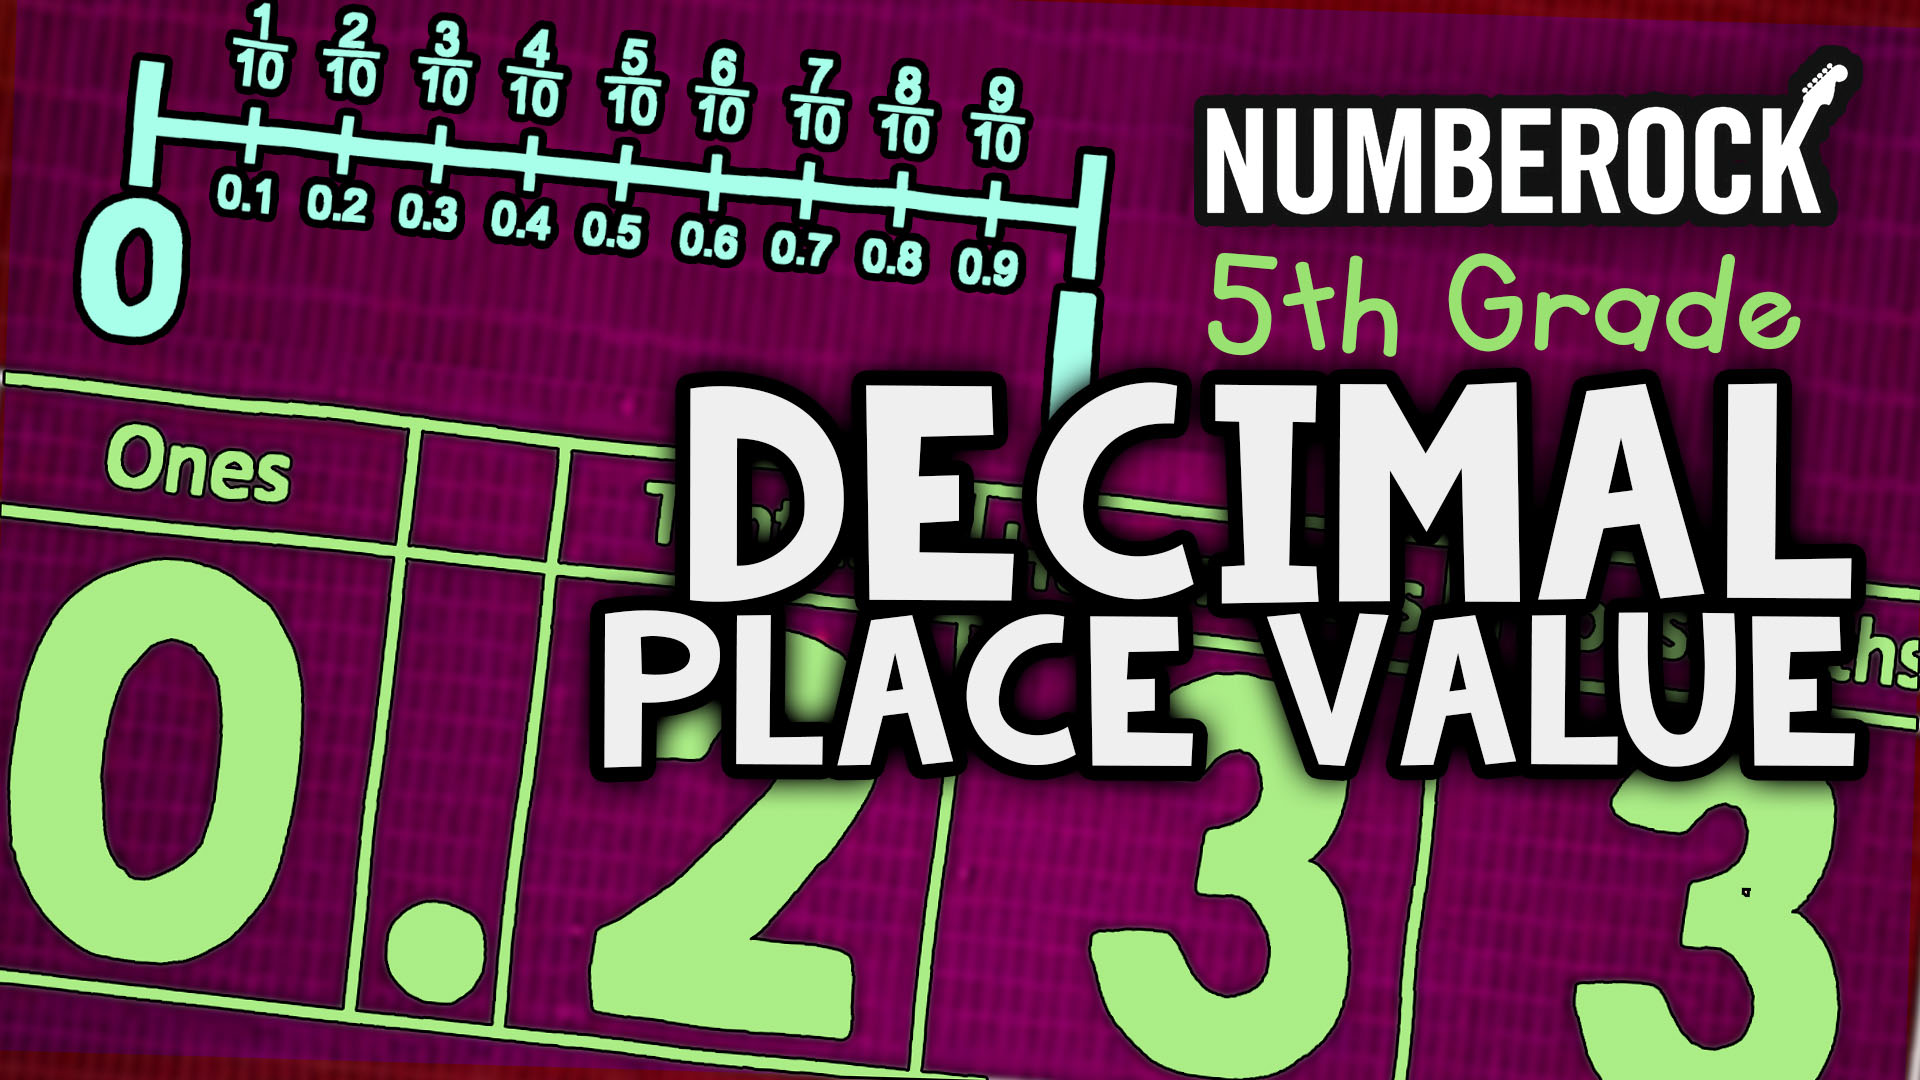 hight resolution of Decimal Place Value Song   5th Grade - 6th Grade Math Video